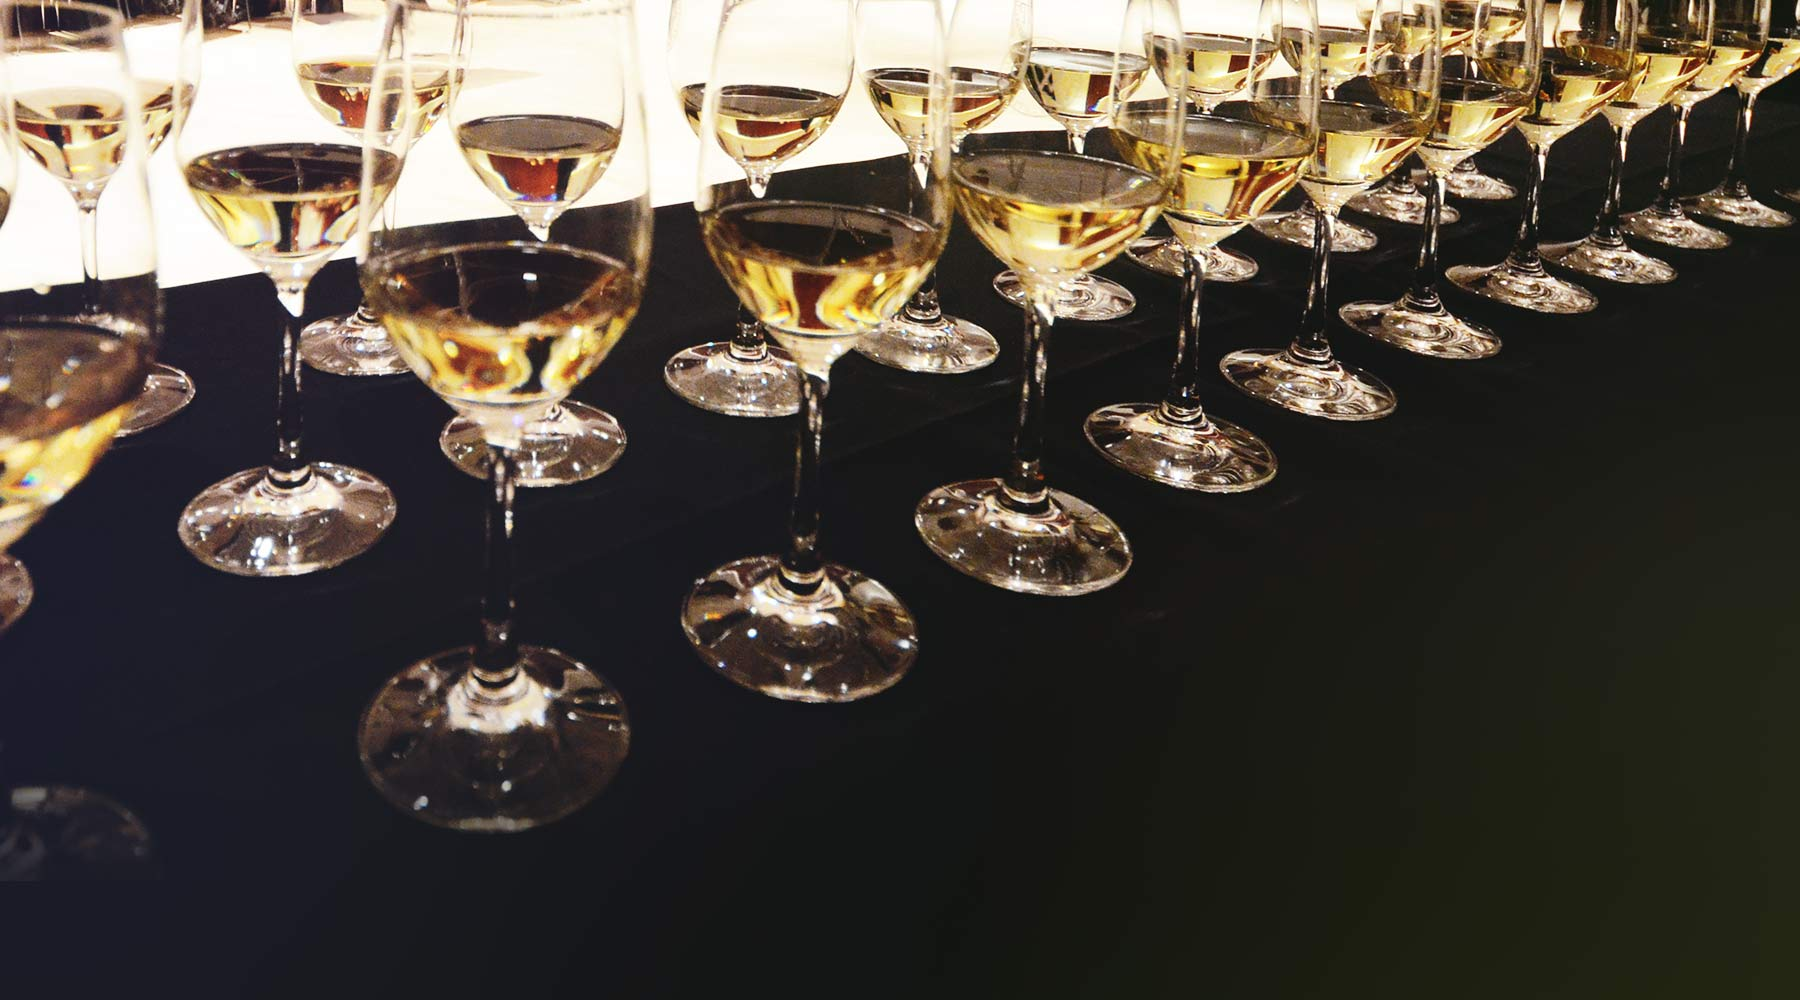 World Of Wine: Sparkling, Sweet and Fortified | Just Wine